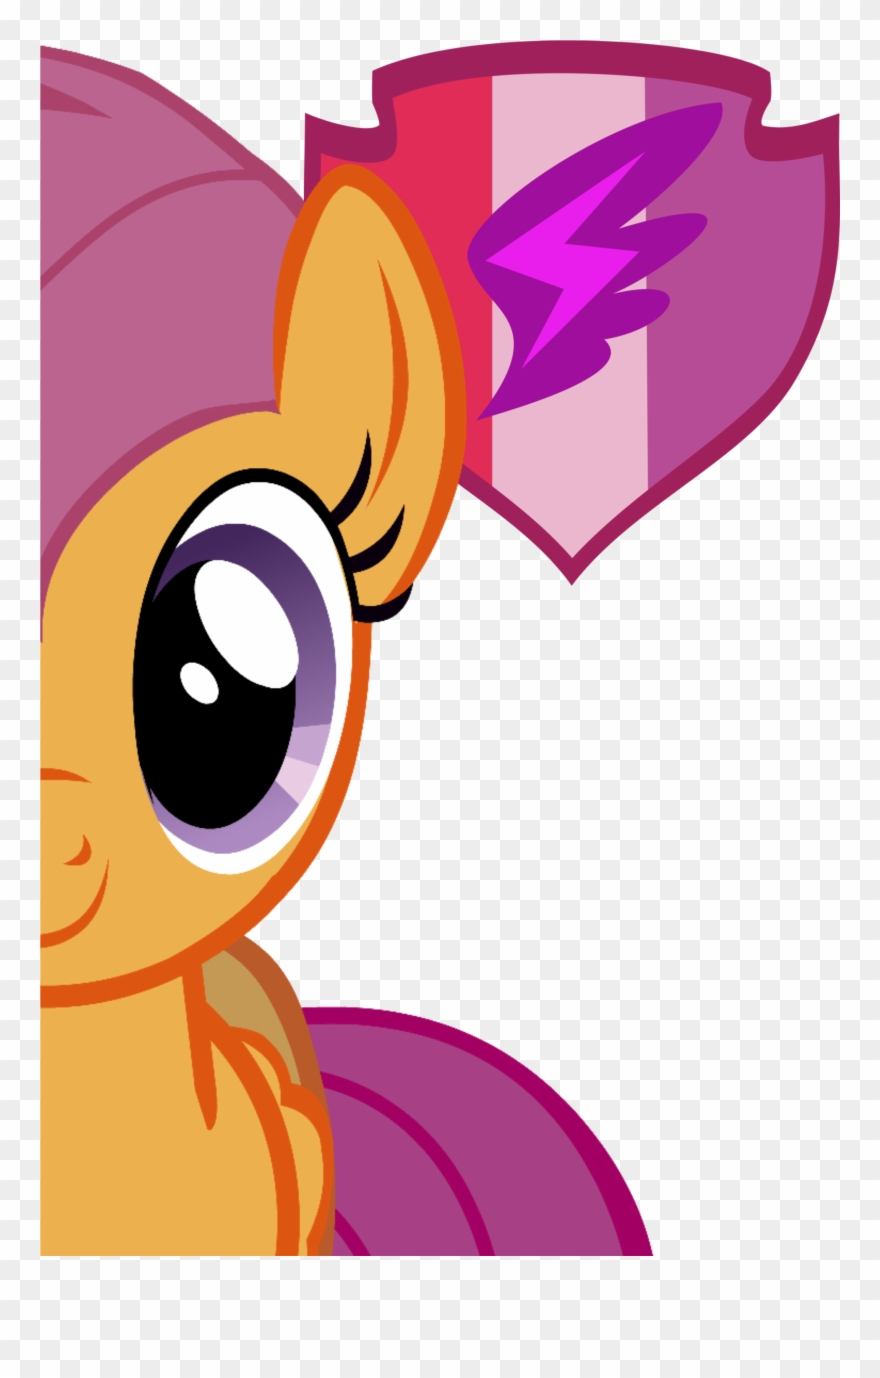 My Little Pony My Little Pony Scootaloo Clipart 896928 Pinclipart High quality rainbow dash scootaloo gifts and merchandise. my little pony scootaloo clipart